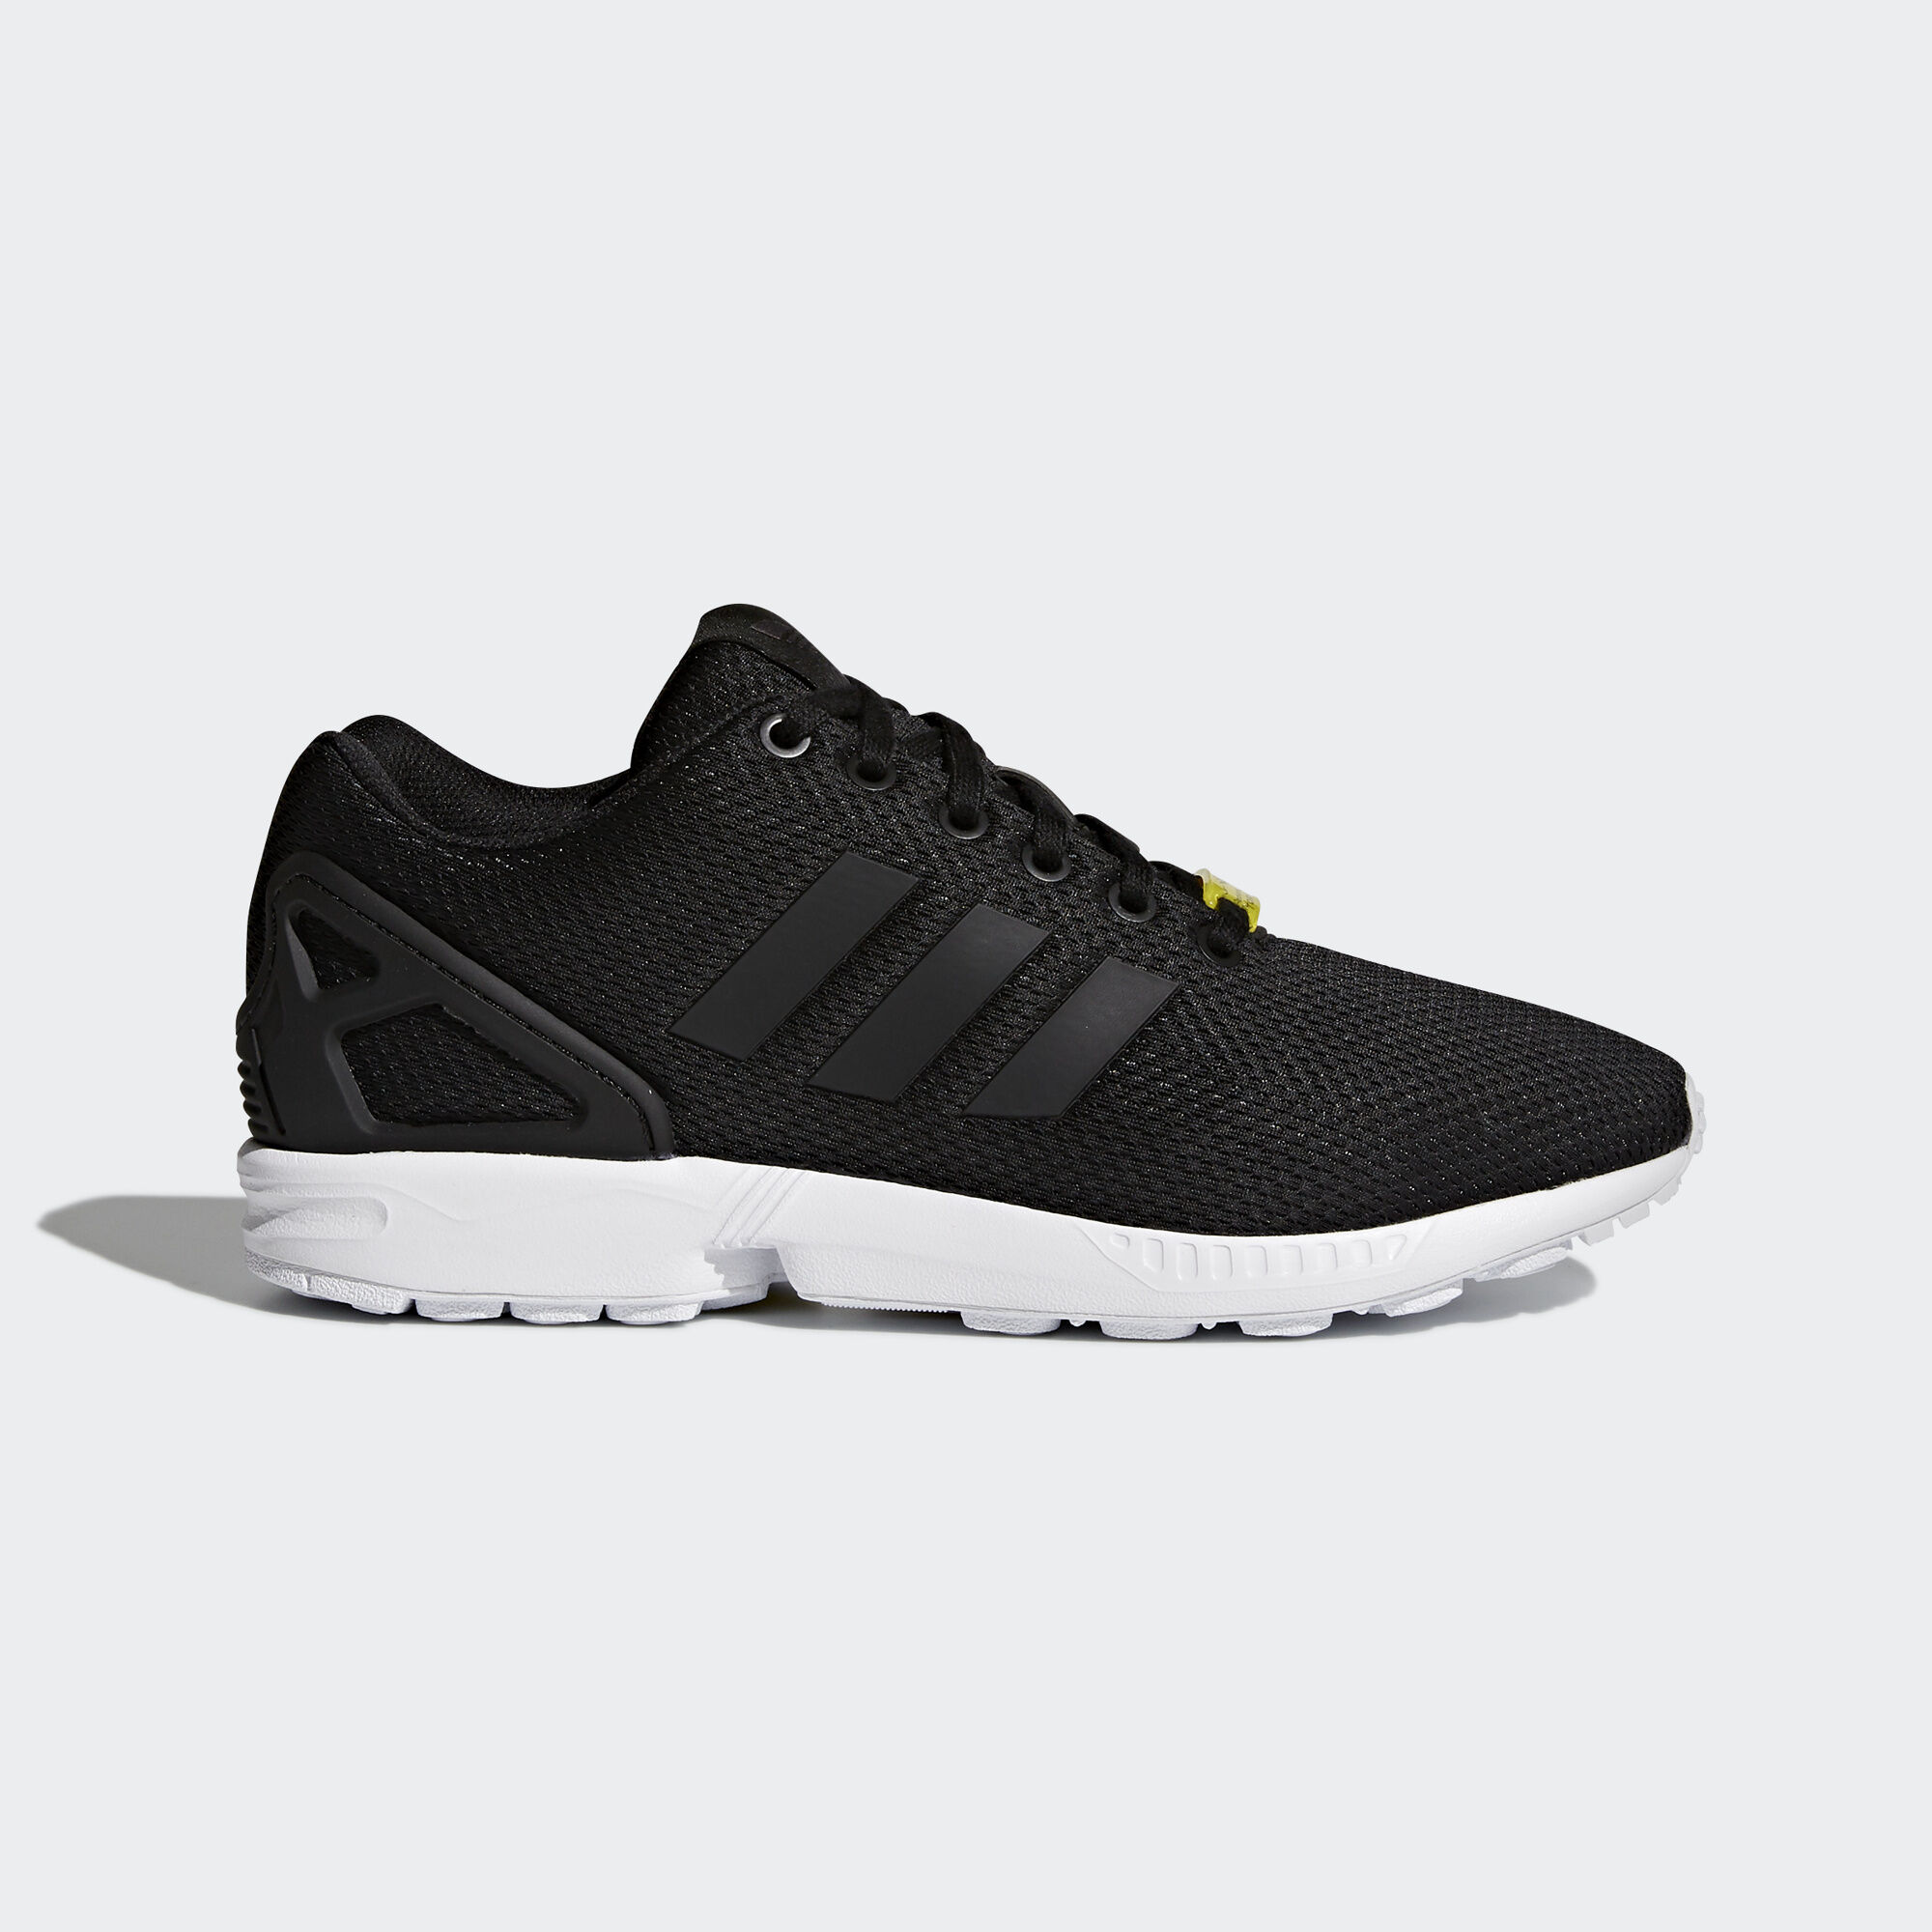 Adidas Zx Flux Black And Gold Bottom